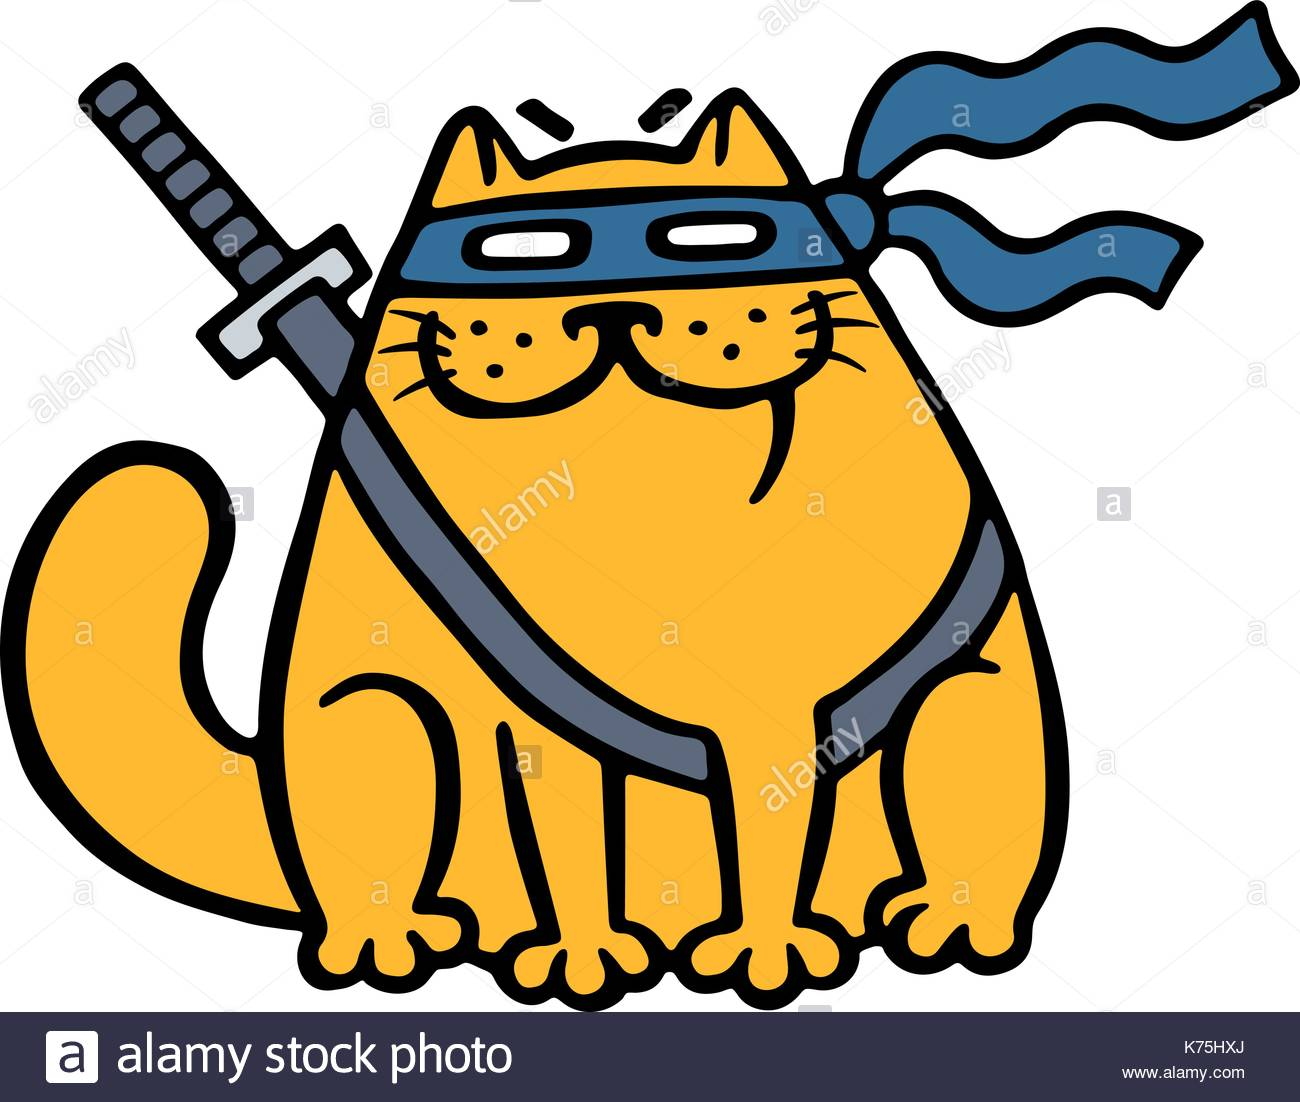 1300x1102 Cute Fat Ninja Cat In A Mask And A Sword. Funny Cartoon Cool Stock